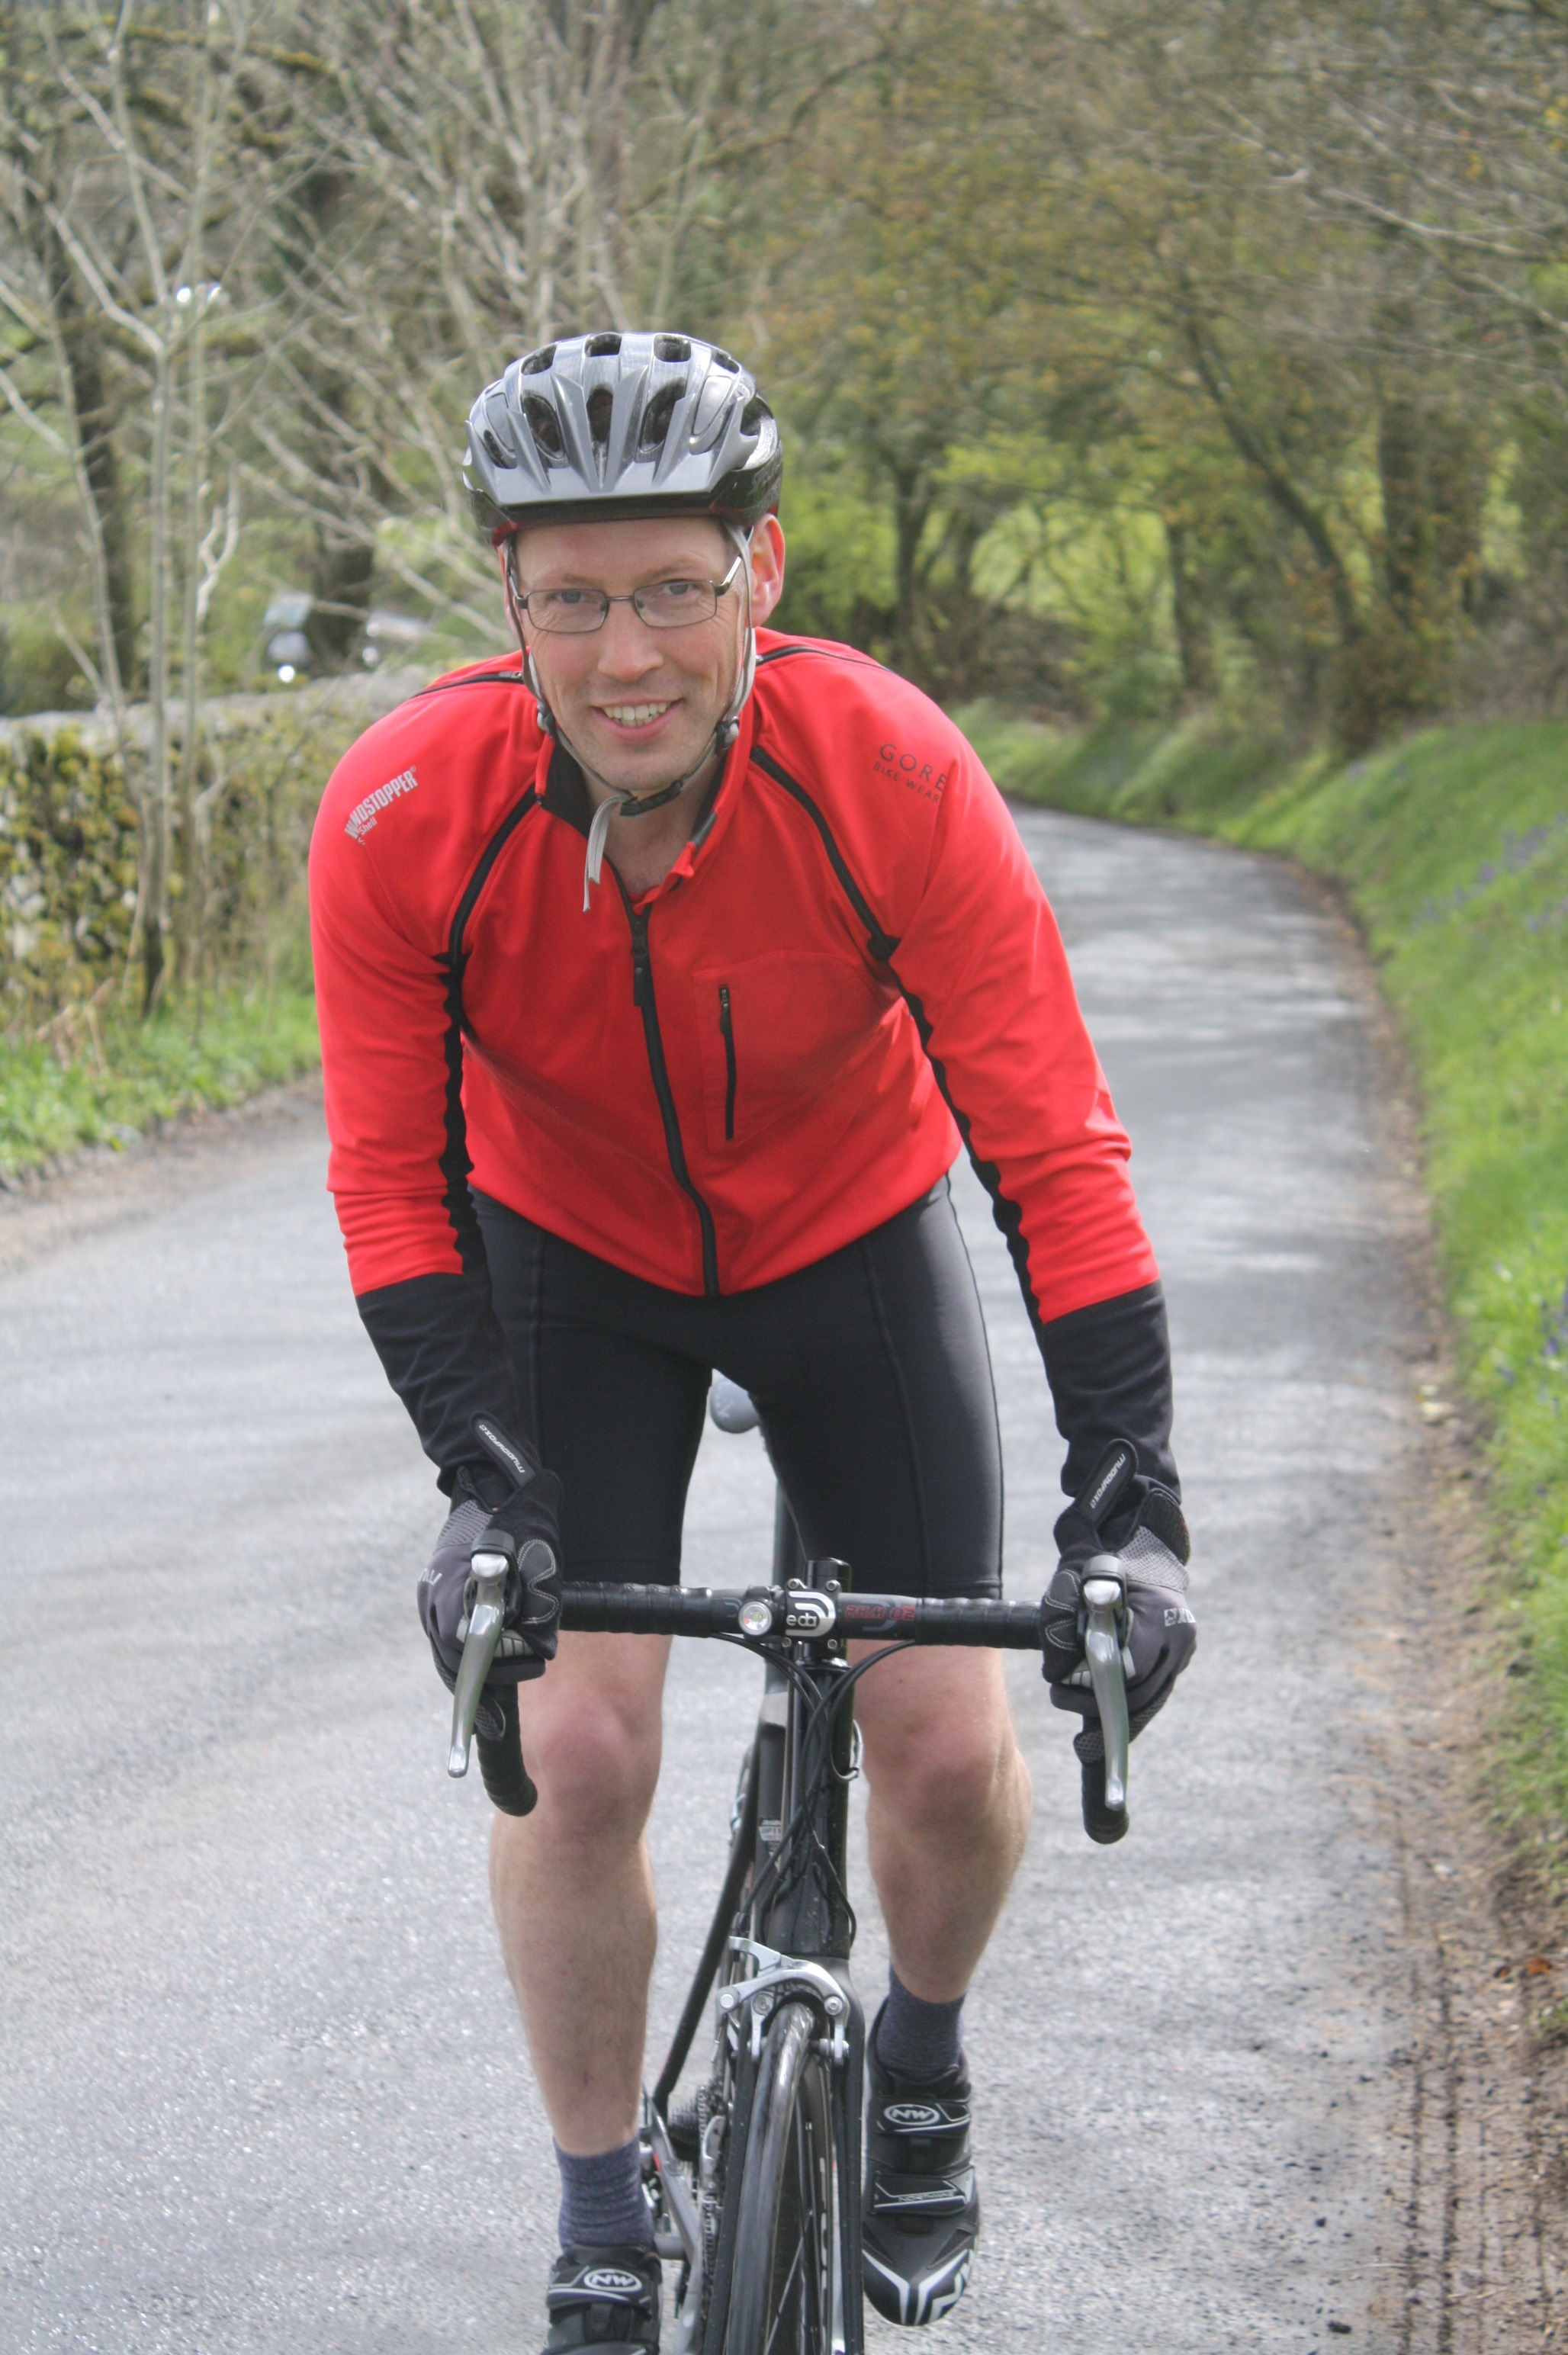 Peter Bascombe is going to be cycling 112 miles for charity